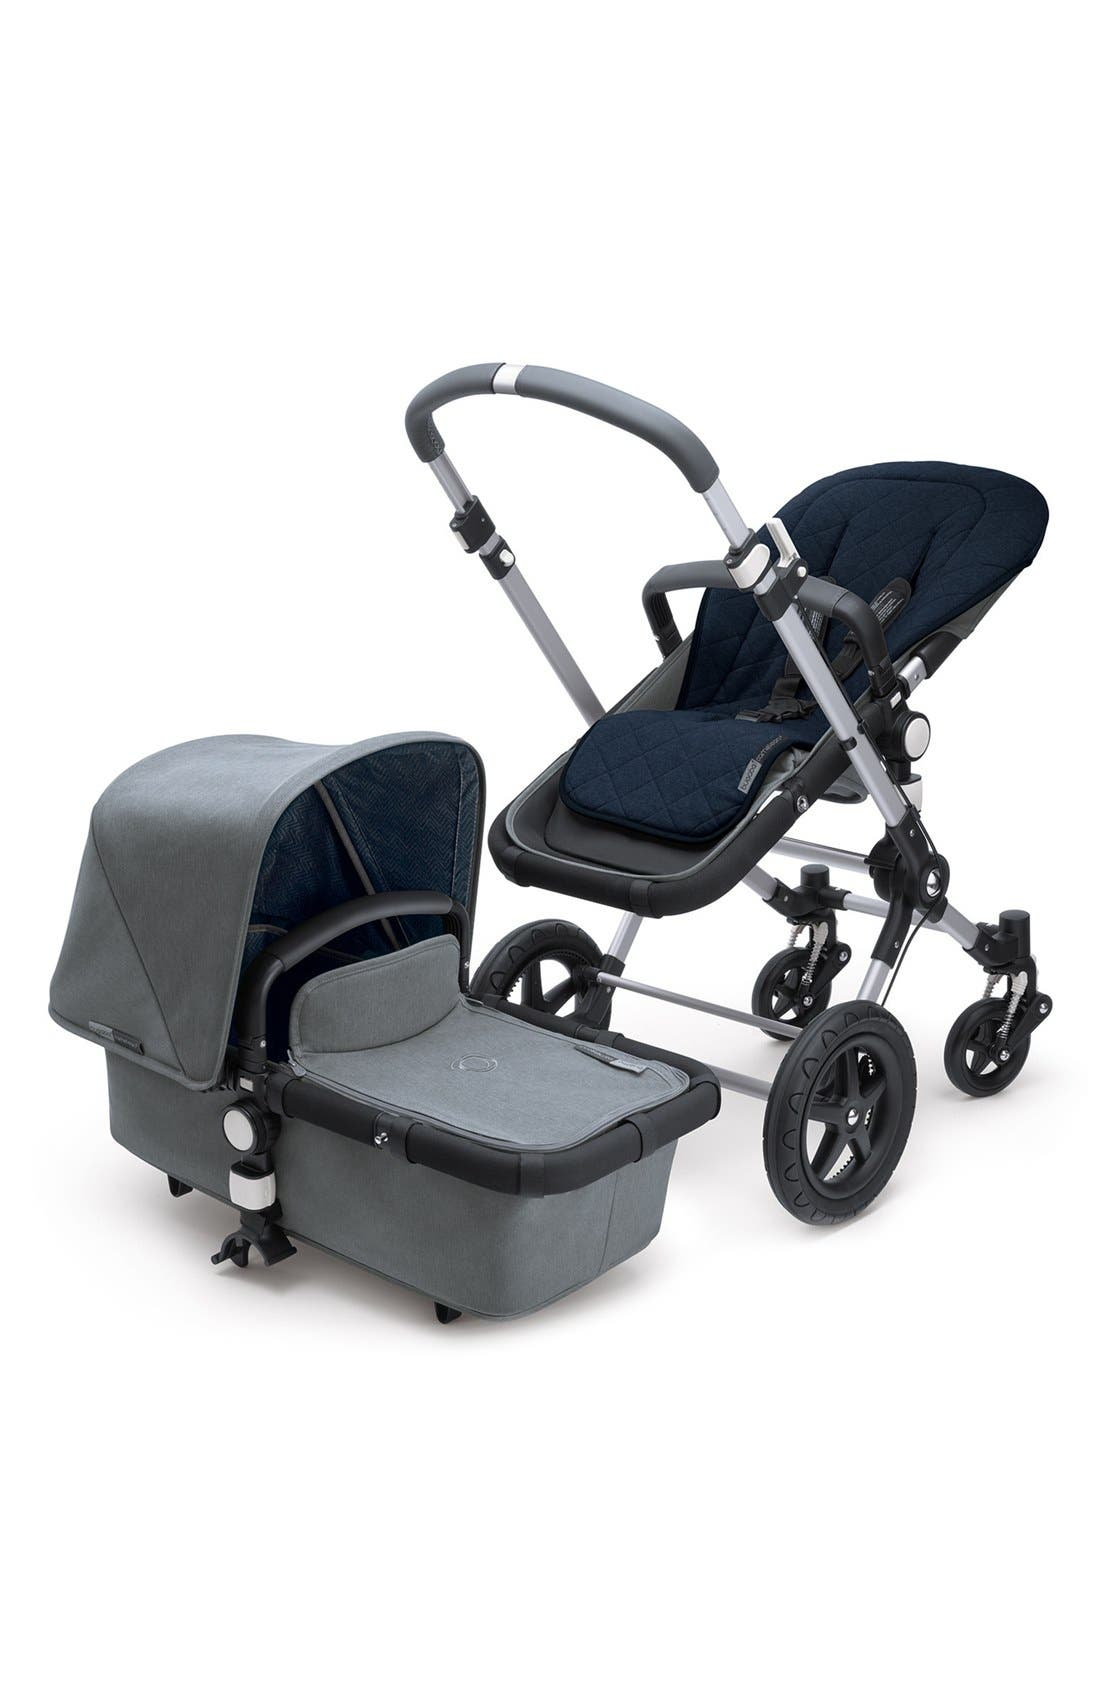 Alternate Image 1 Selected - Bugaboo 'Cameleon³ - Ave' Stroller (Special Edition)